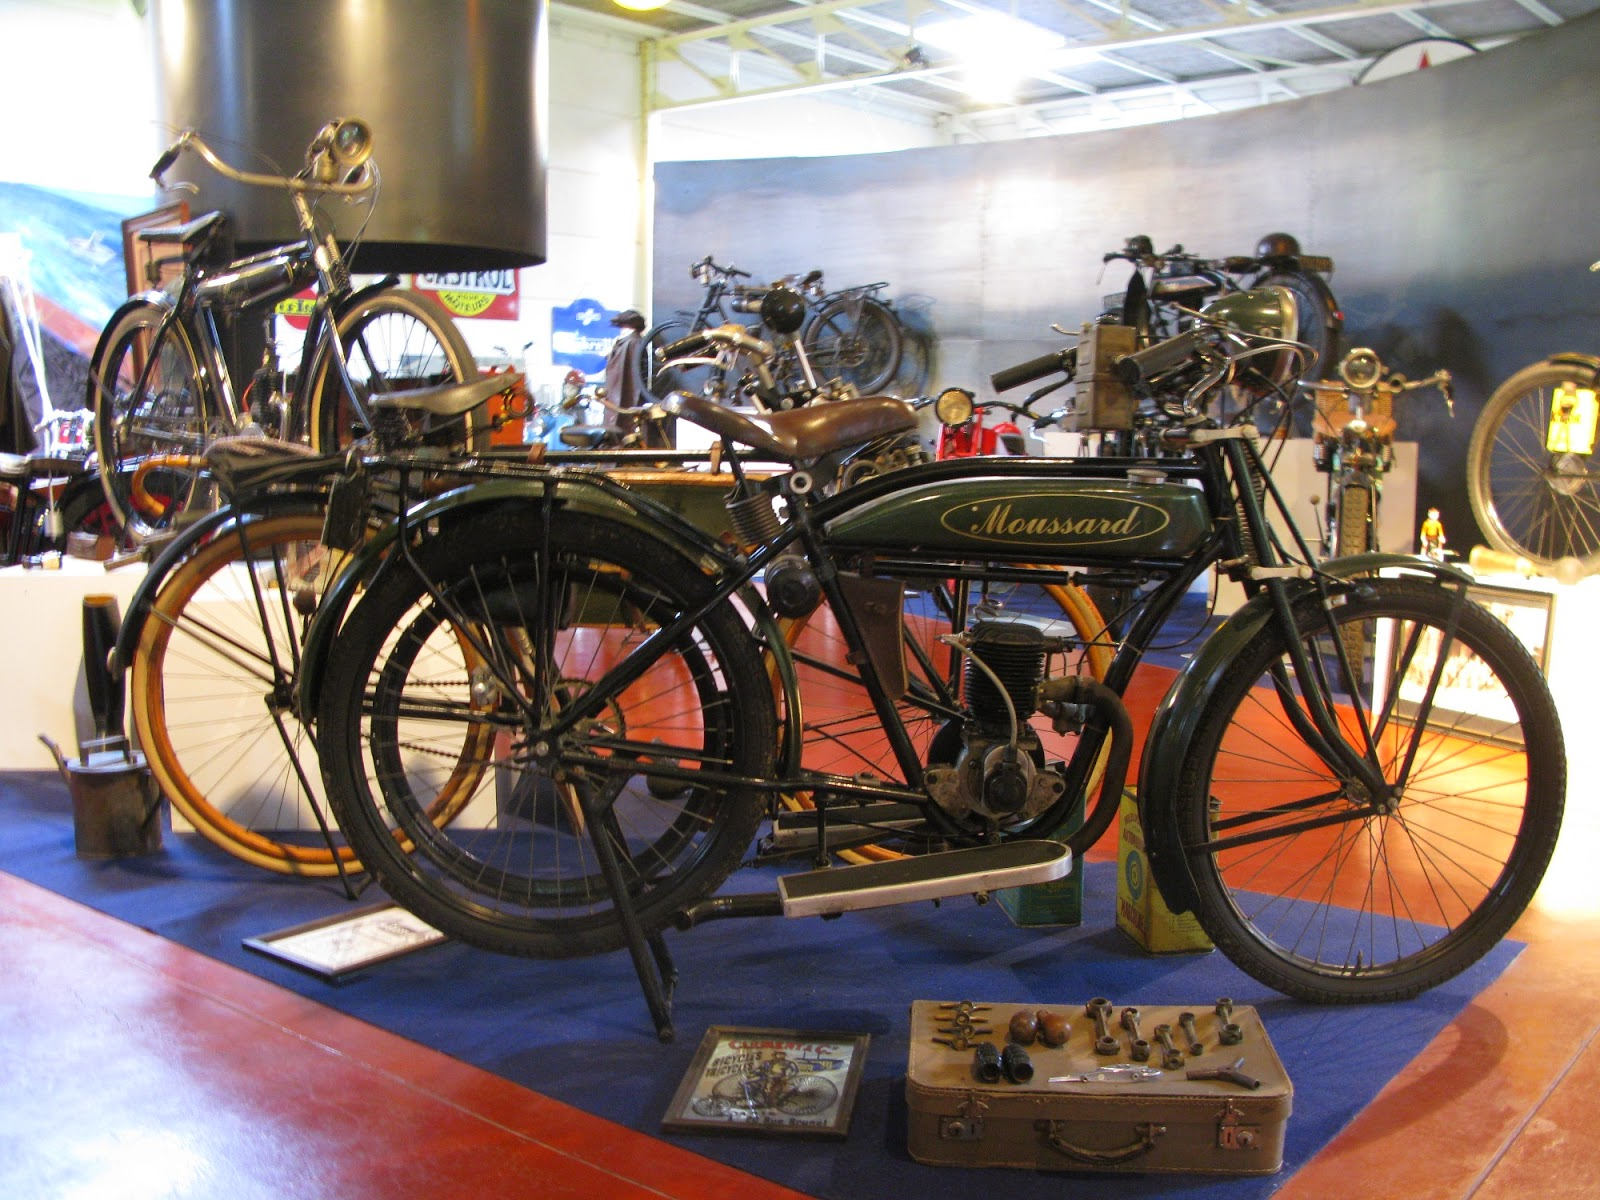 Moussard twenties two stroke